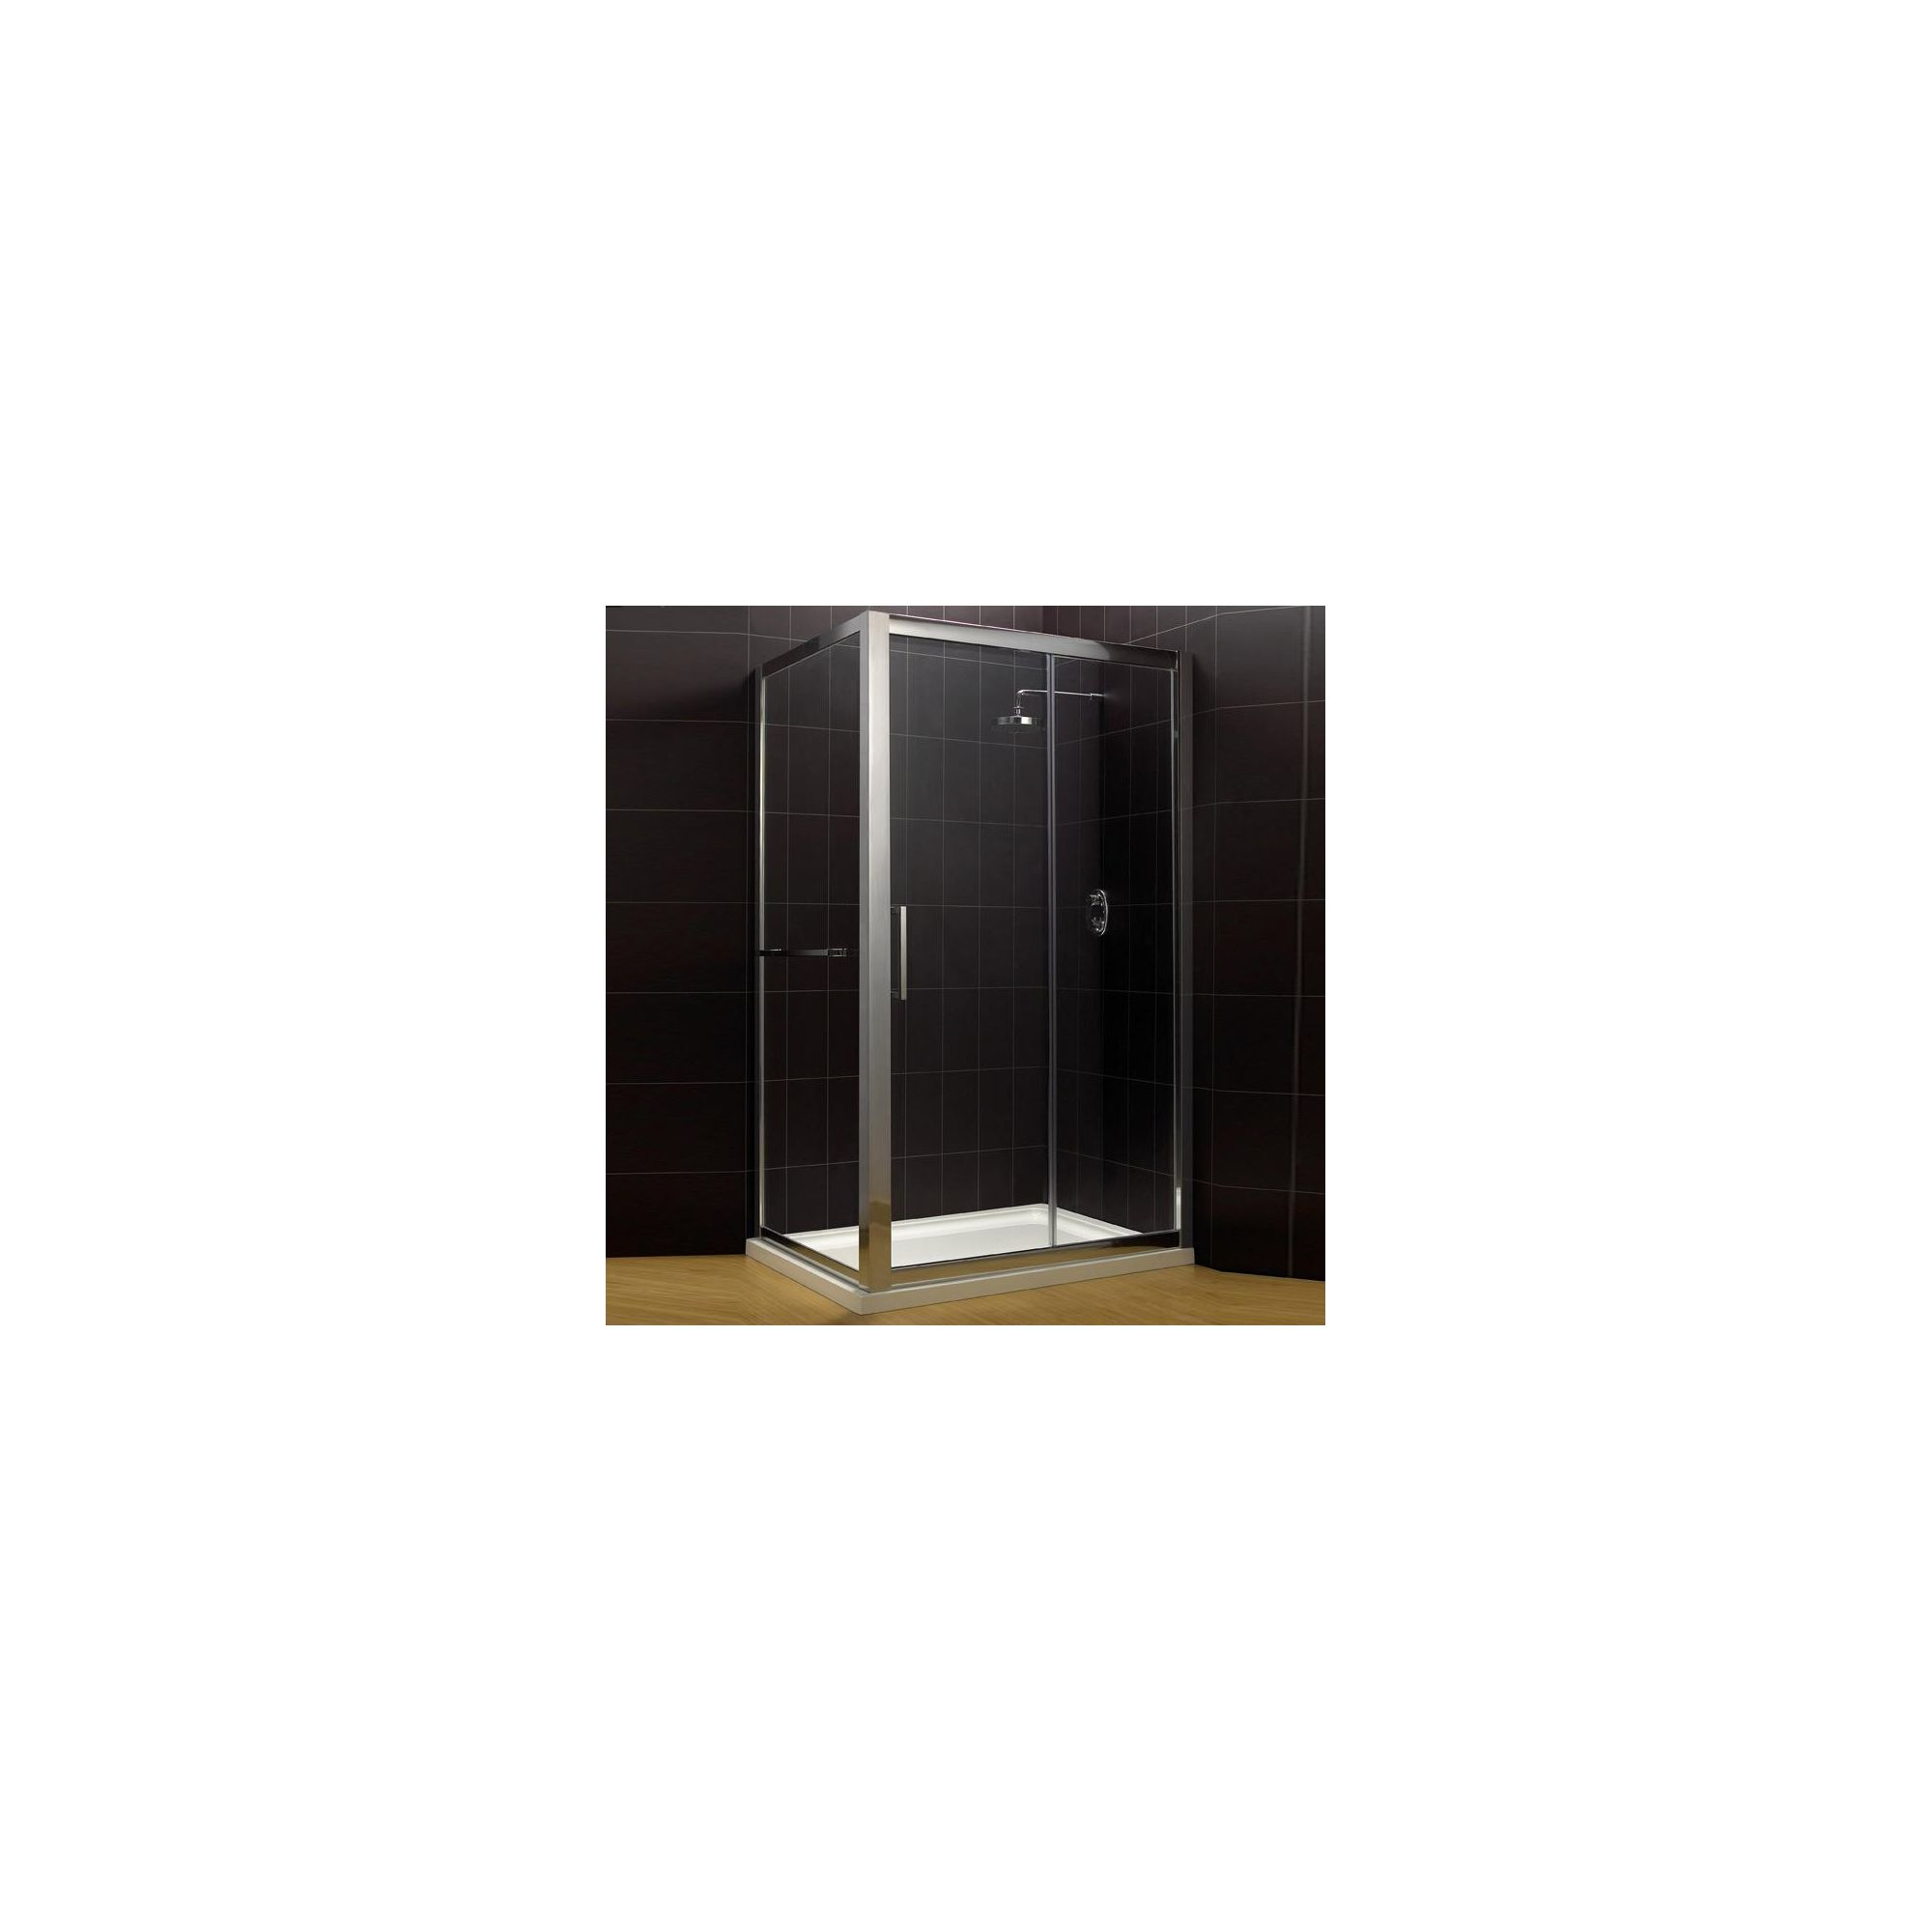 Duchy Supreme Silver Sliding Door Shower Enclosure, 1100mm x 800mm, Standard Tray, 8mm Glass at Tesco Direct